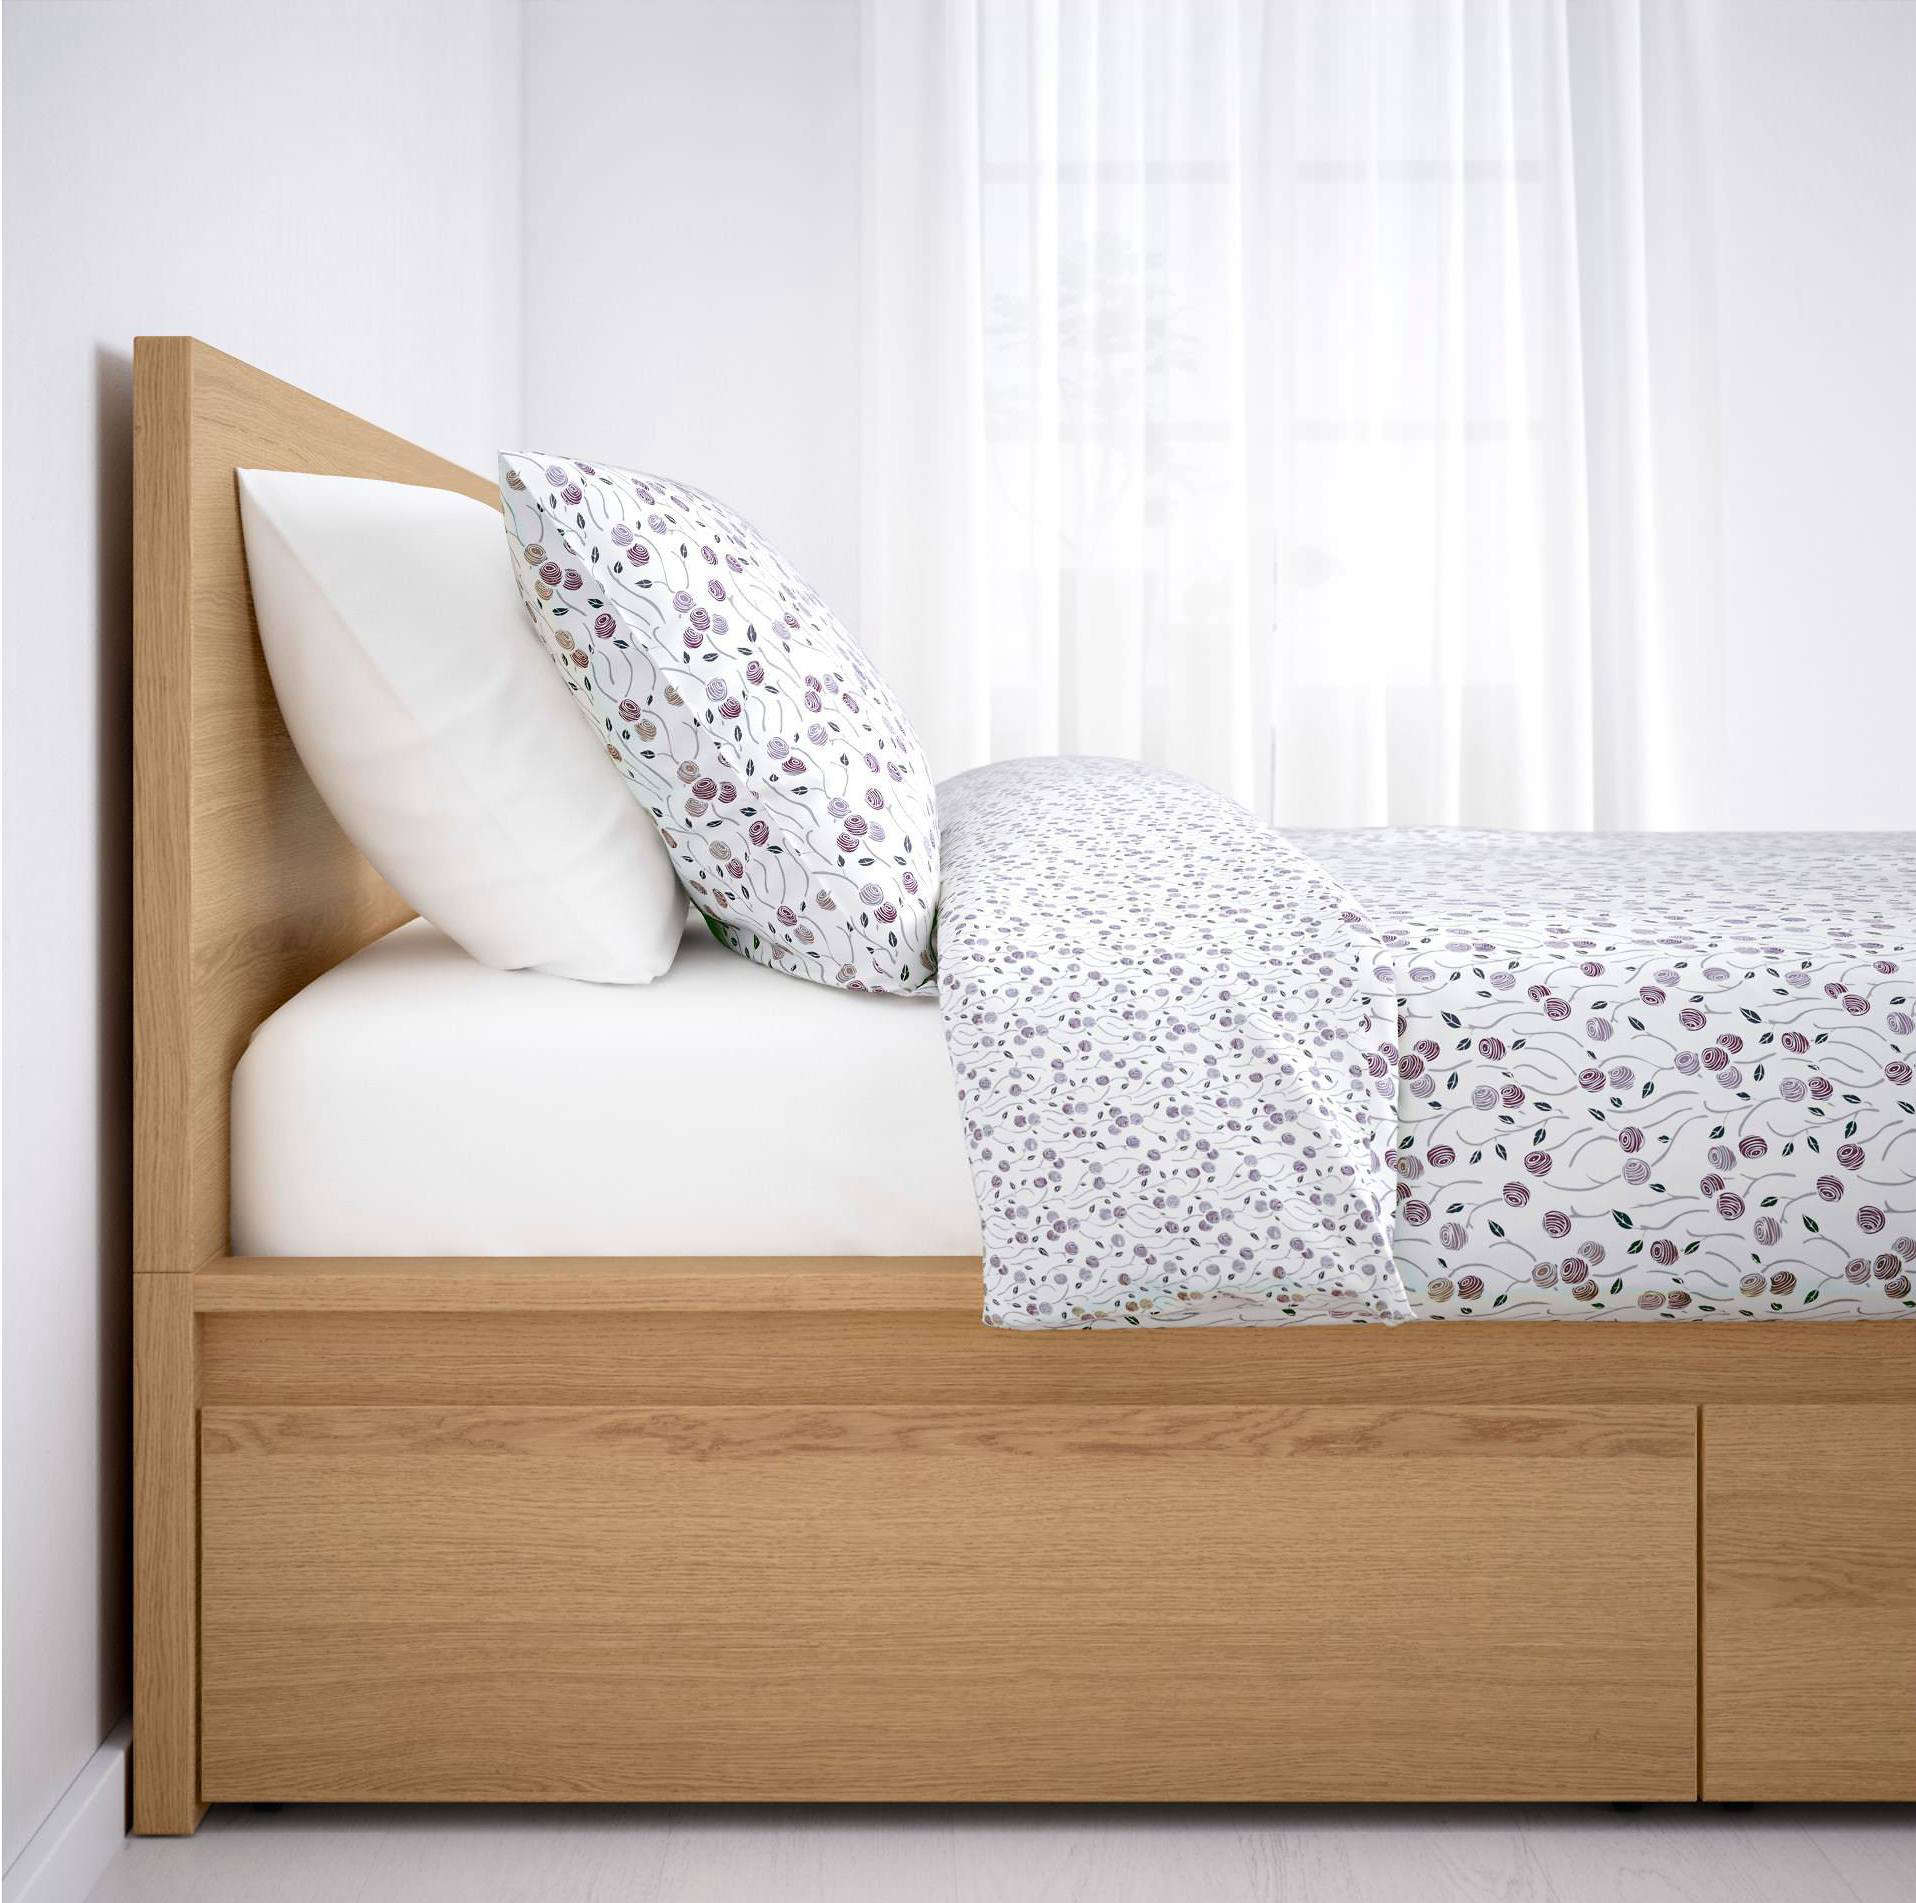 Ikea Malm Bed Storage: Malm High Bed Frame